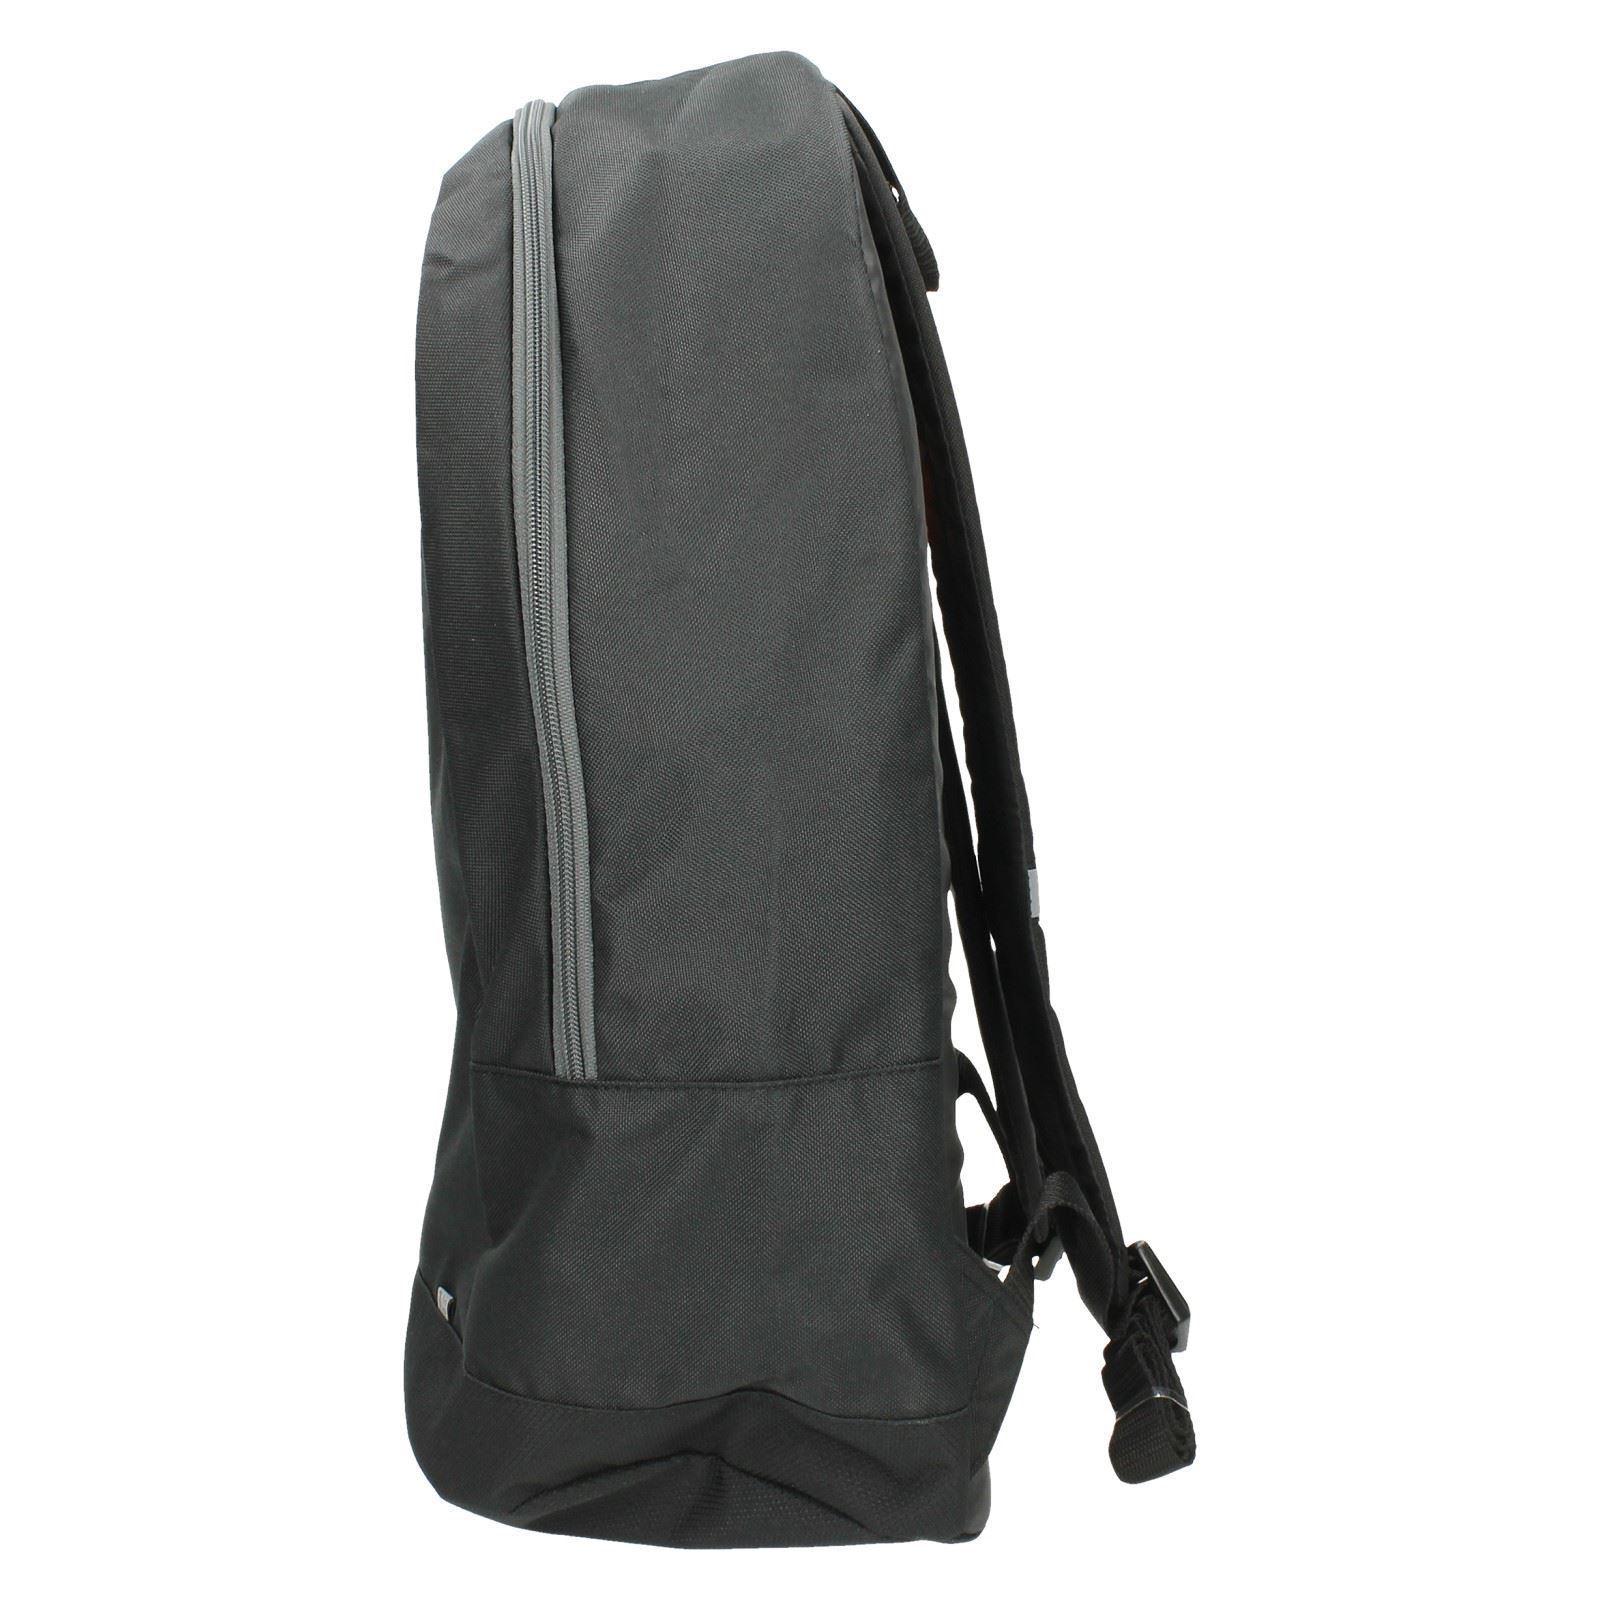 25e25cc5ead9 Puma Pioneer Unisex Polyester Backpack Bag Style-073391